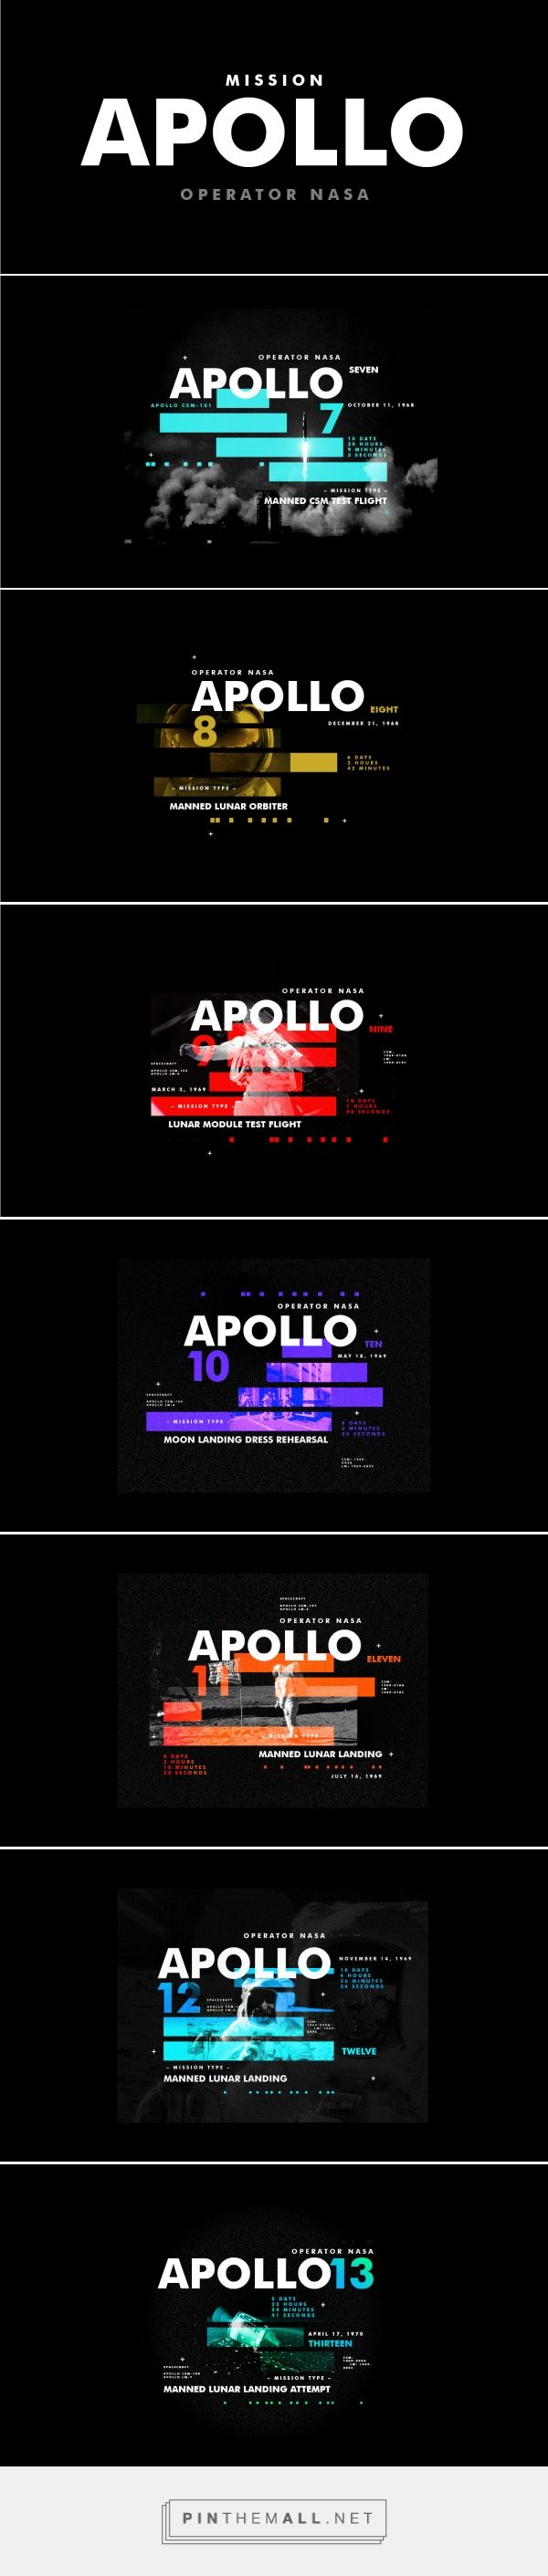 Mission Apollo on Behance - created via https://pinthemall.net